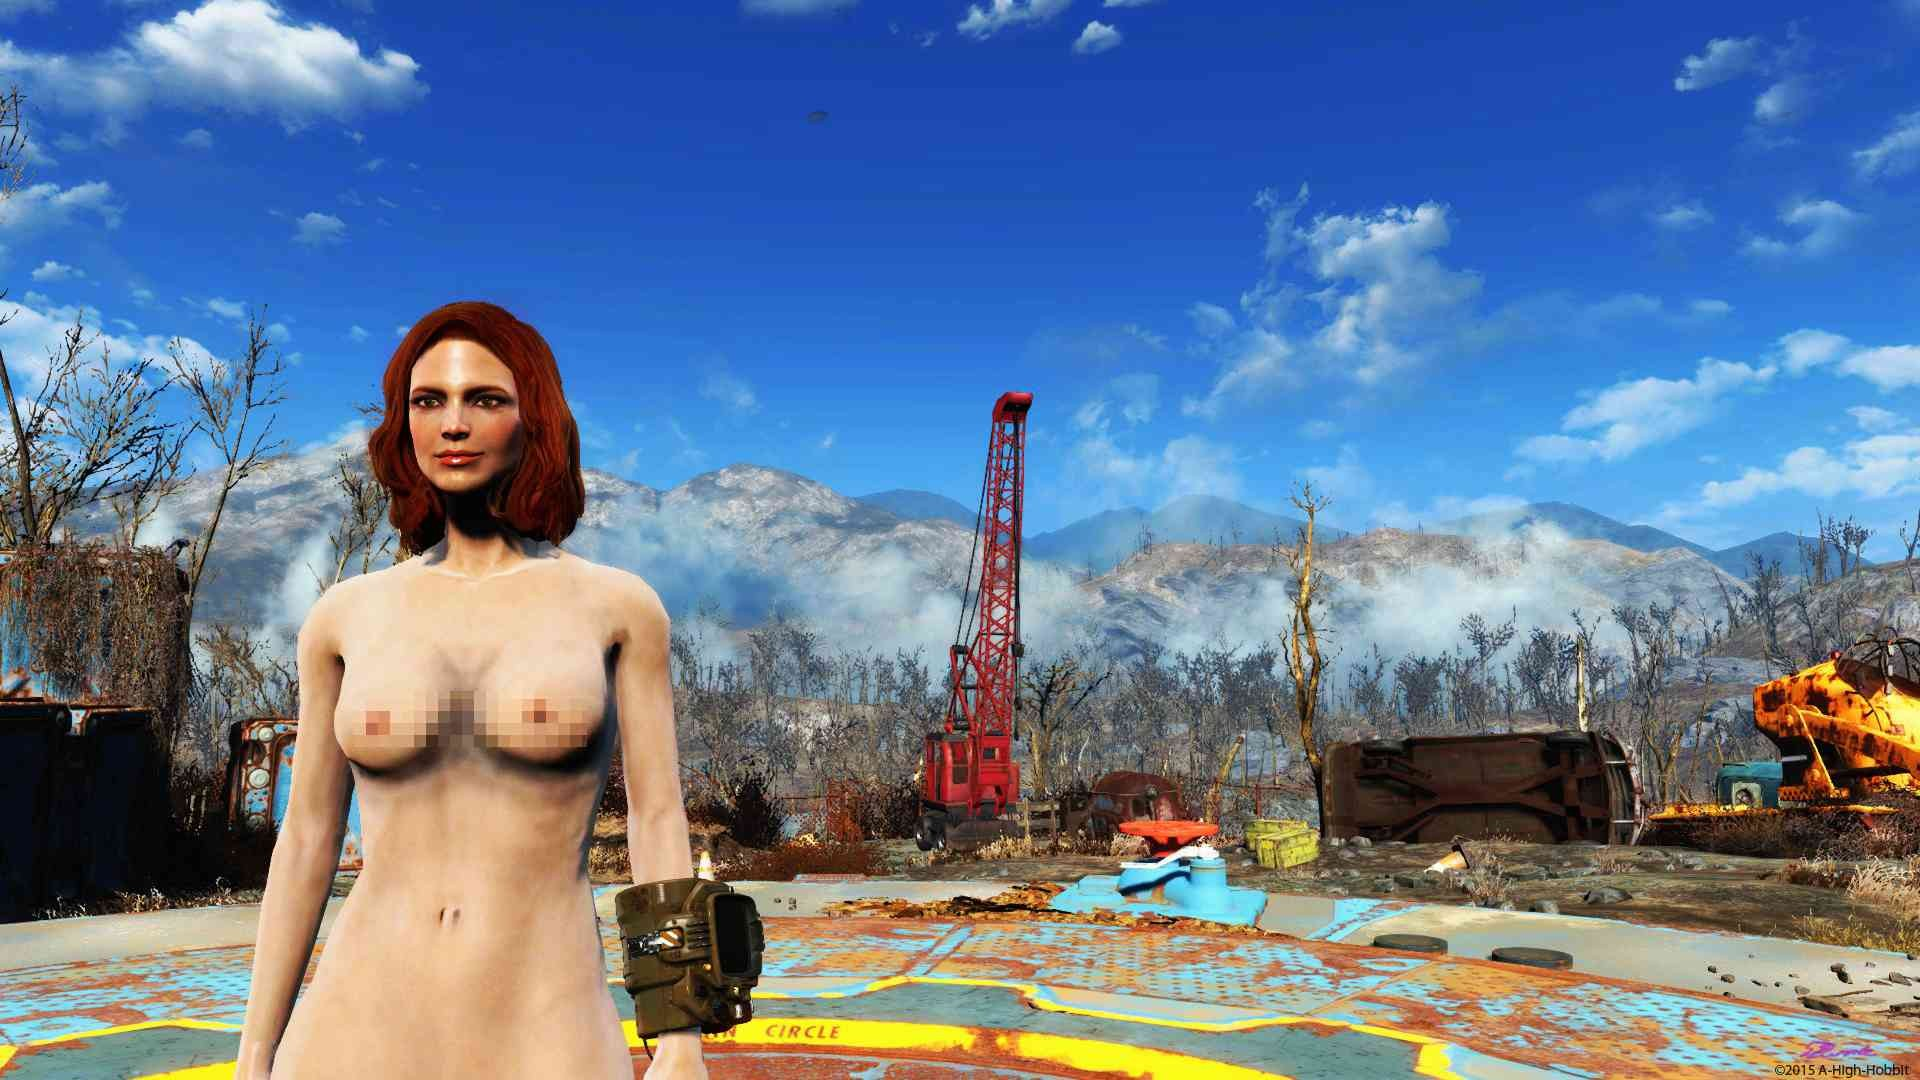 View amata nude fallout exposed toons